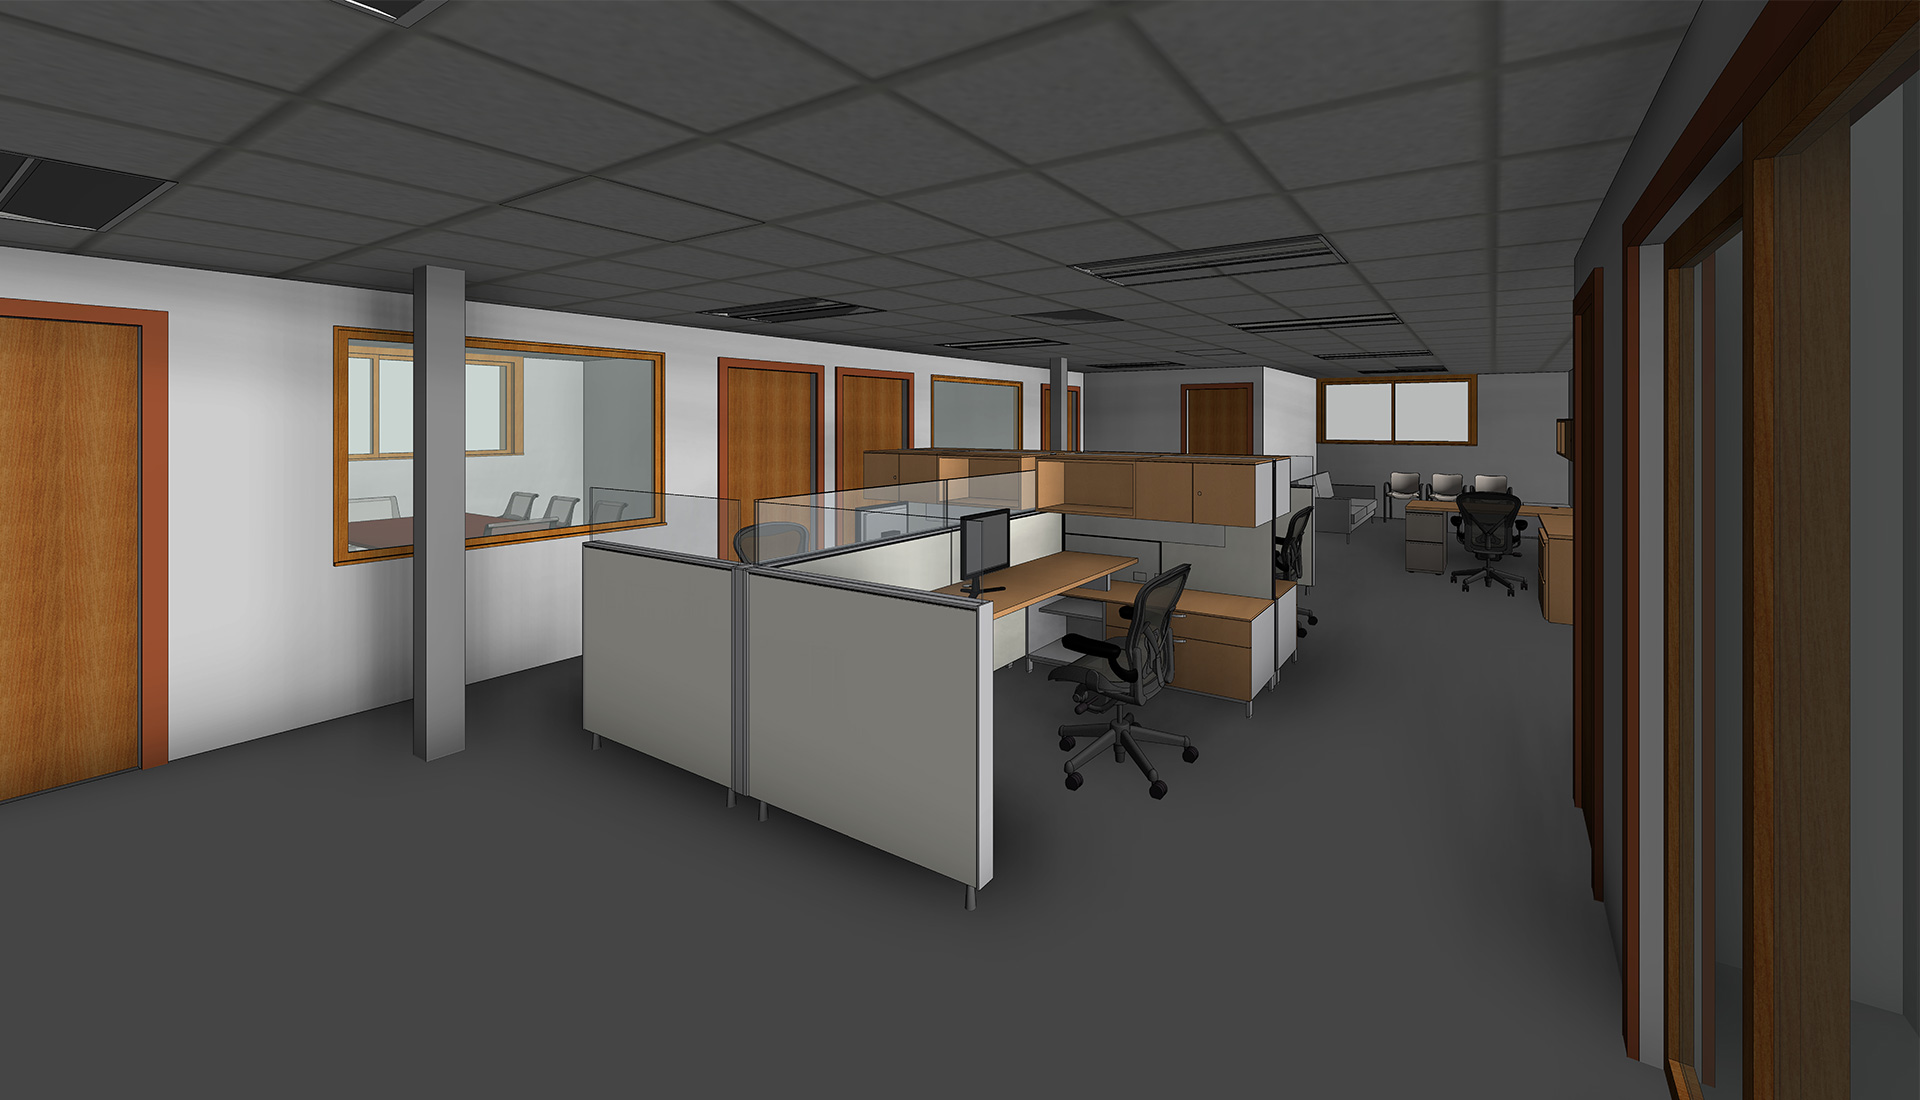 Internal-View_3D-Revit-Architectural-Model-with-Custom-Revit-Families_Office-Space_Modeling-by-United-BIM